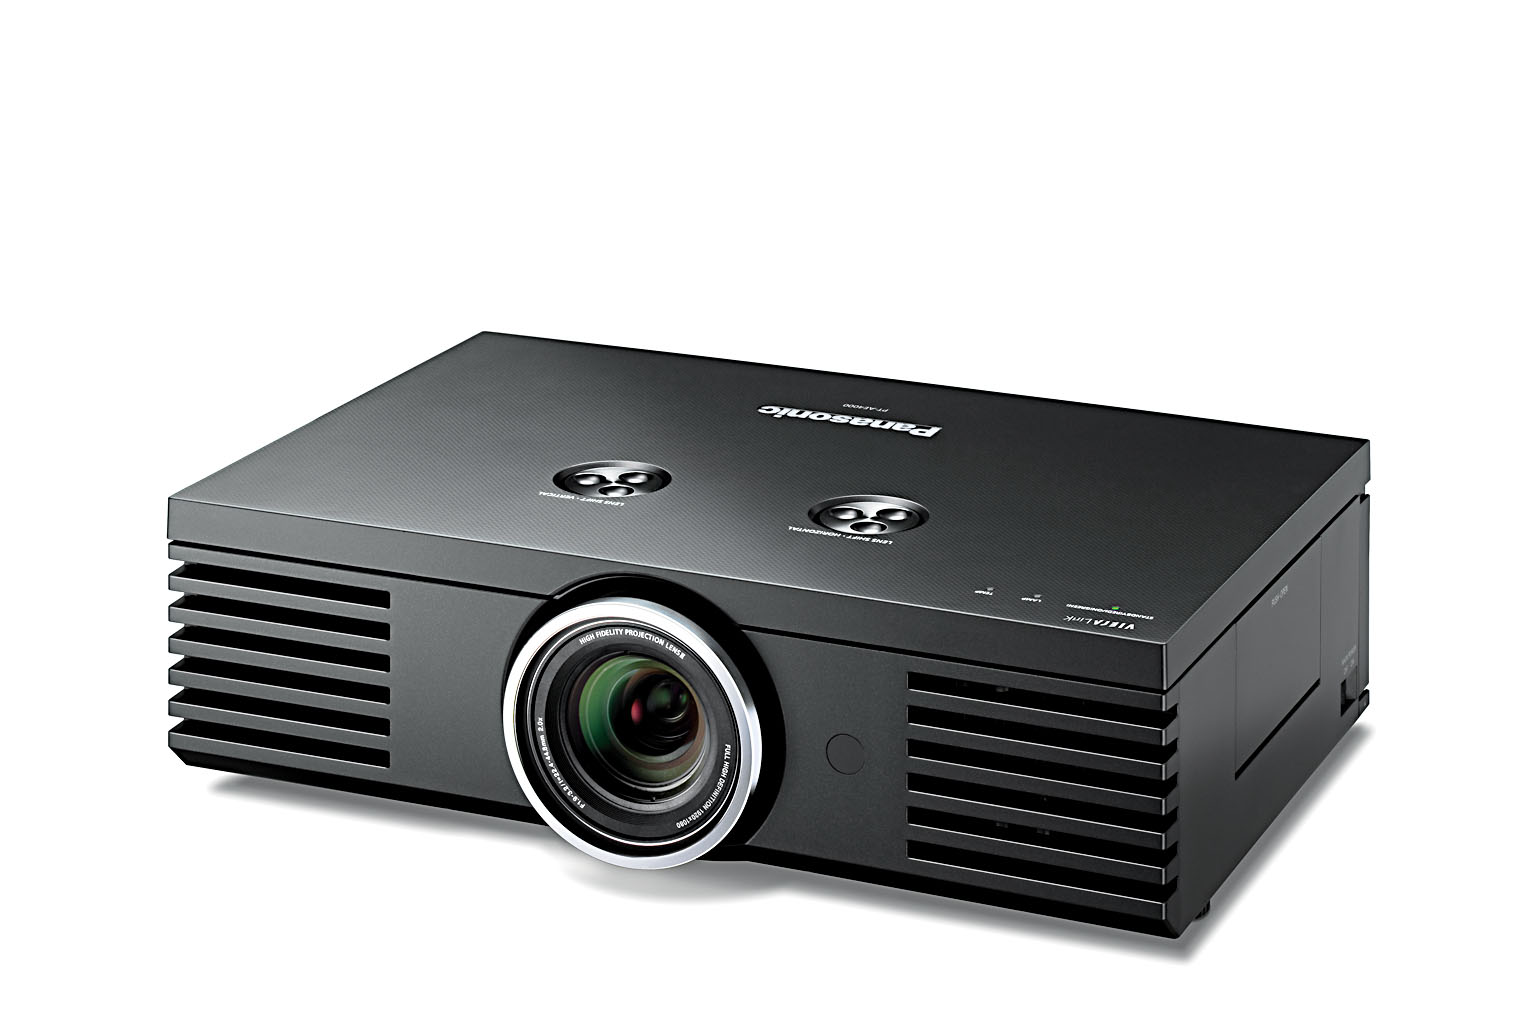 Garden Design - Panasonic PT-AE4000U 1600 Lumen LCD Home Theater Projector